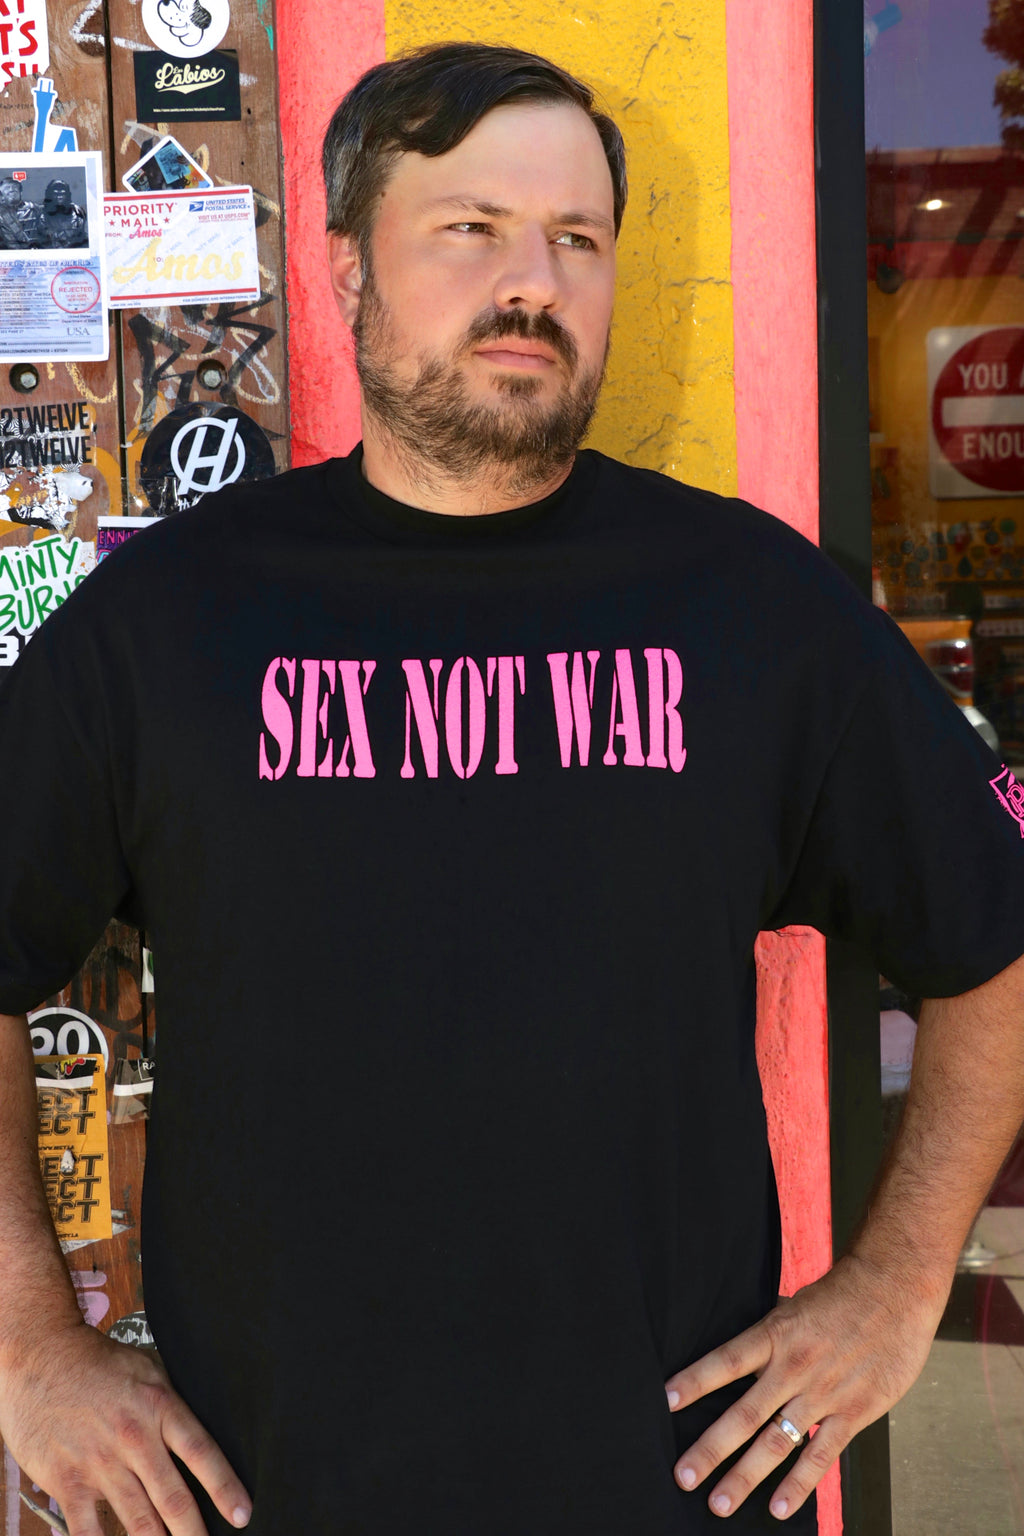 Sex Not War T-Shirt